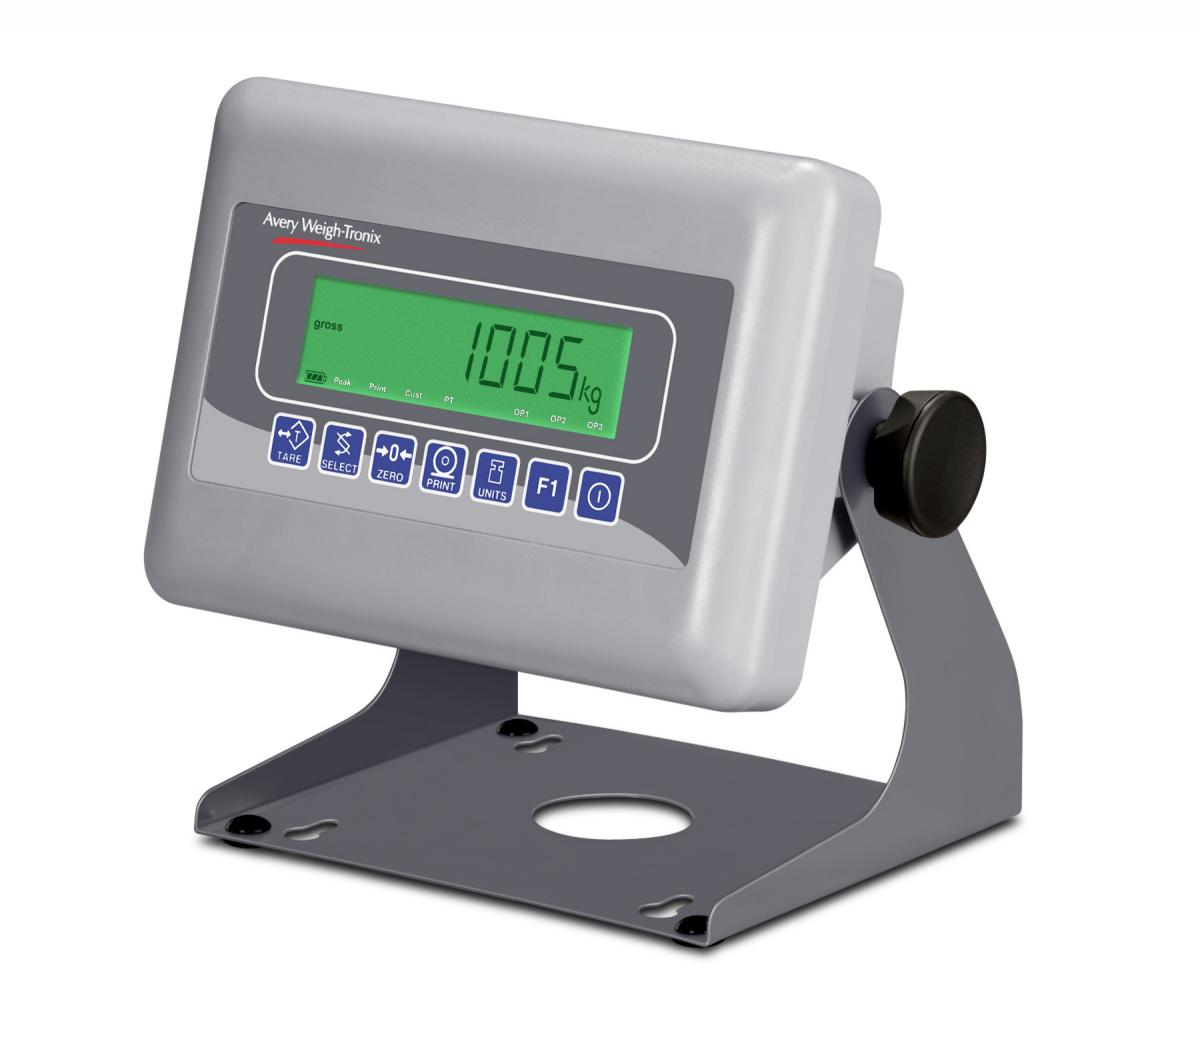 E1005 digital weight indicator